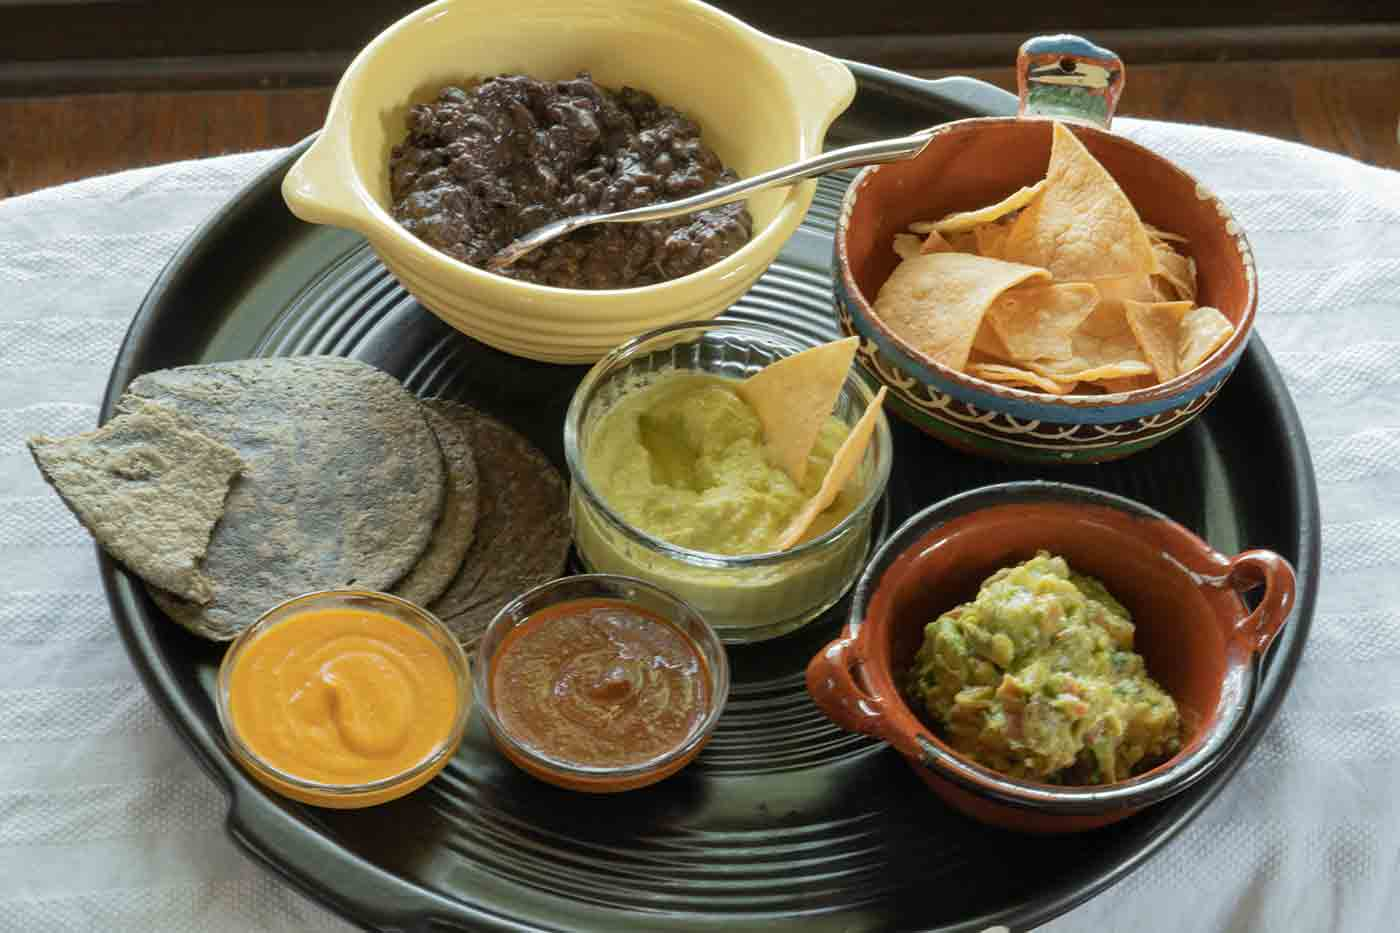 jalapeno sauce and other salsas with guacamole and beans and blue corn tortillas